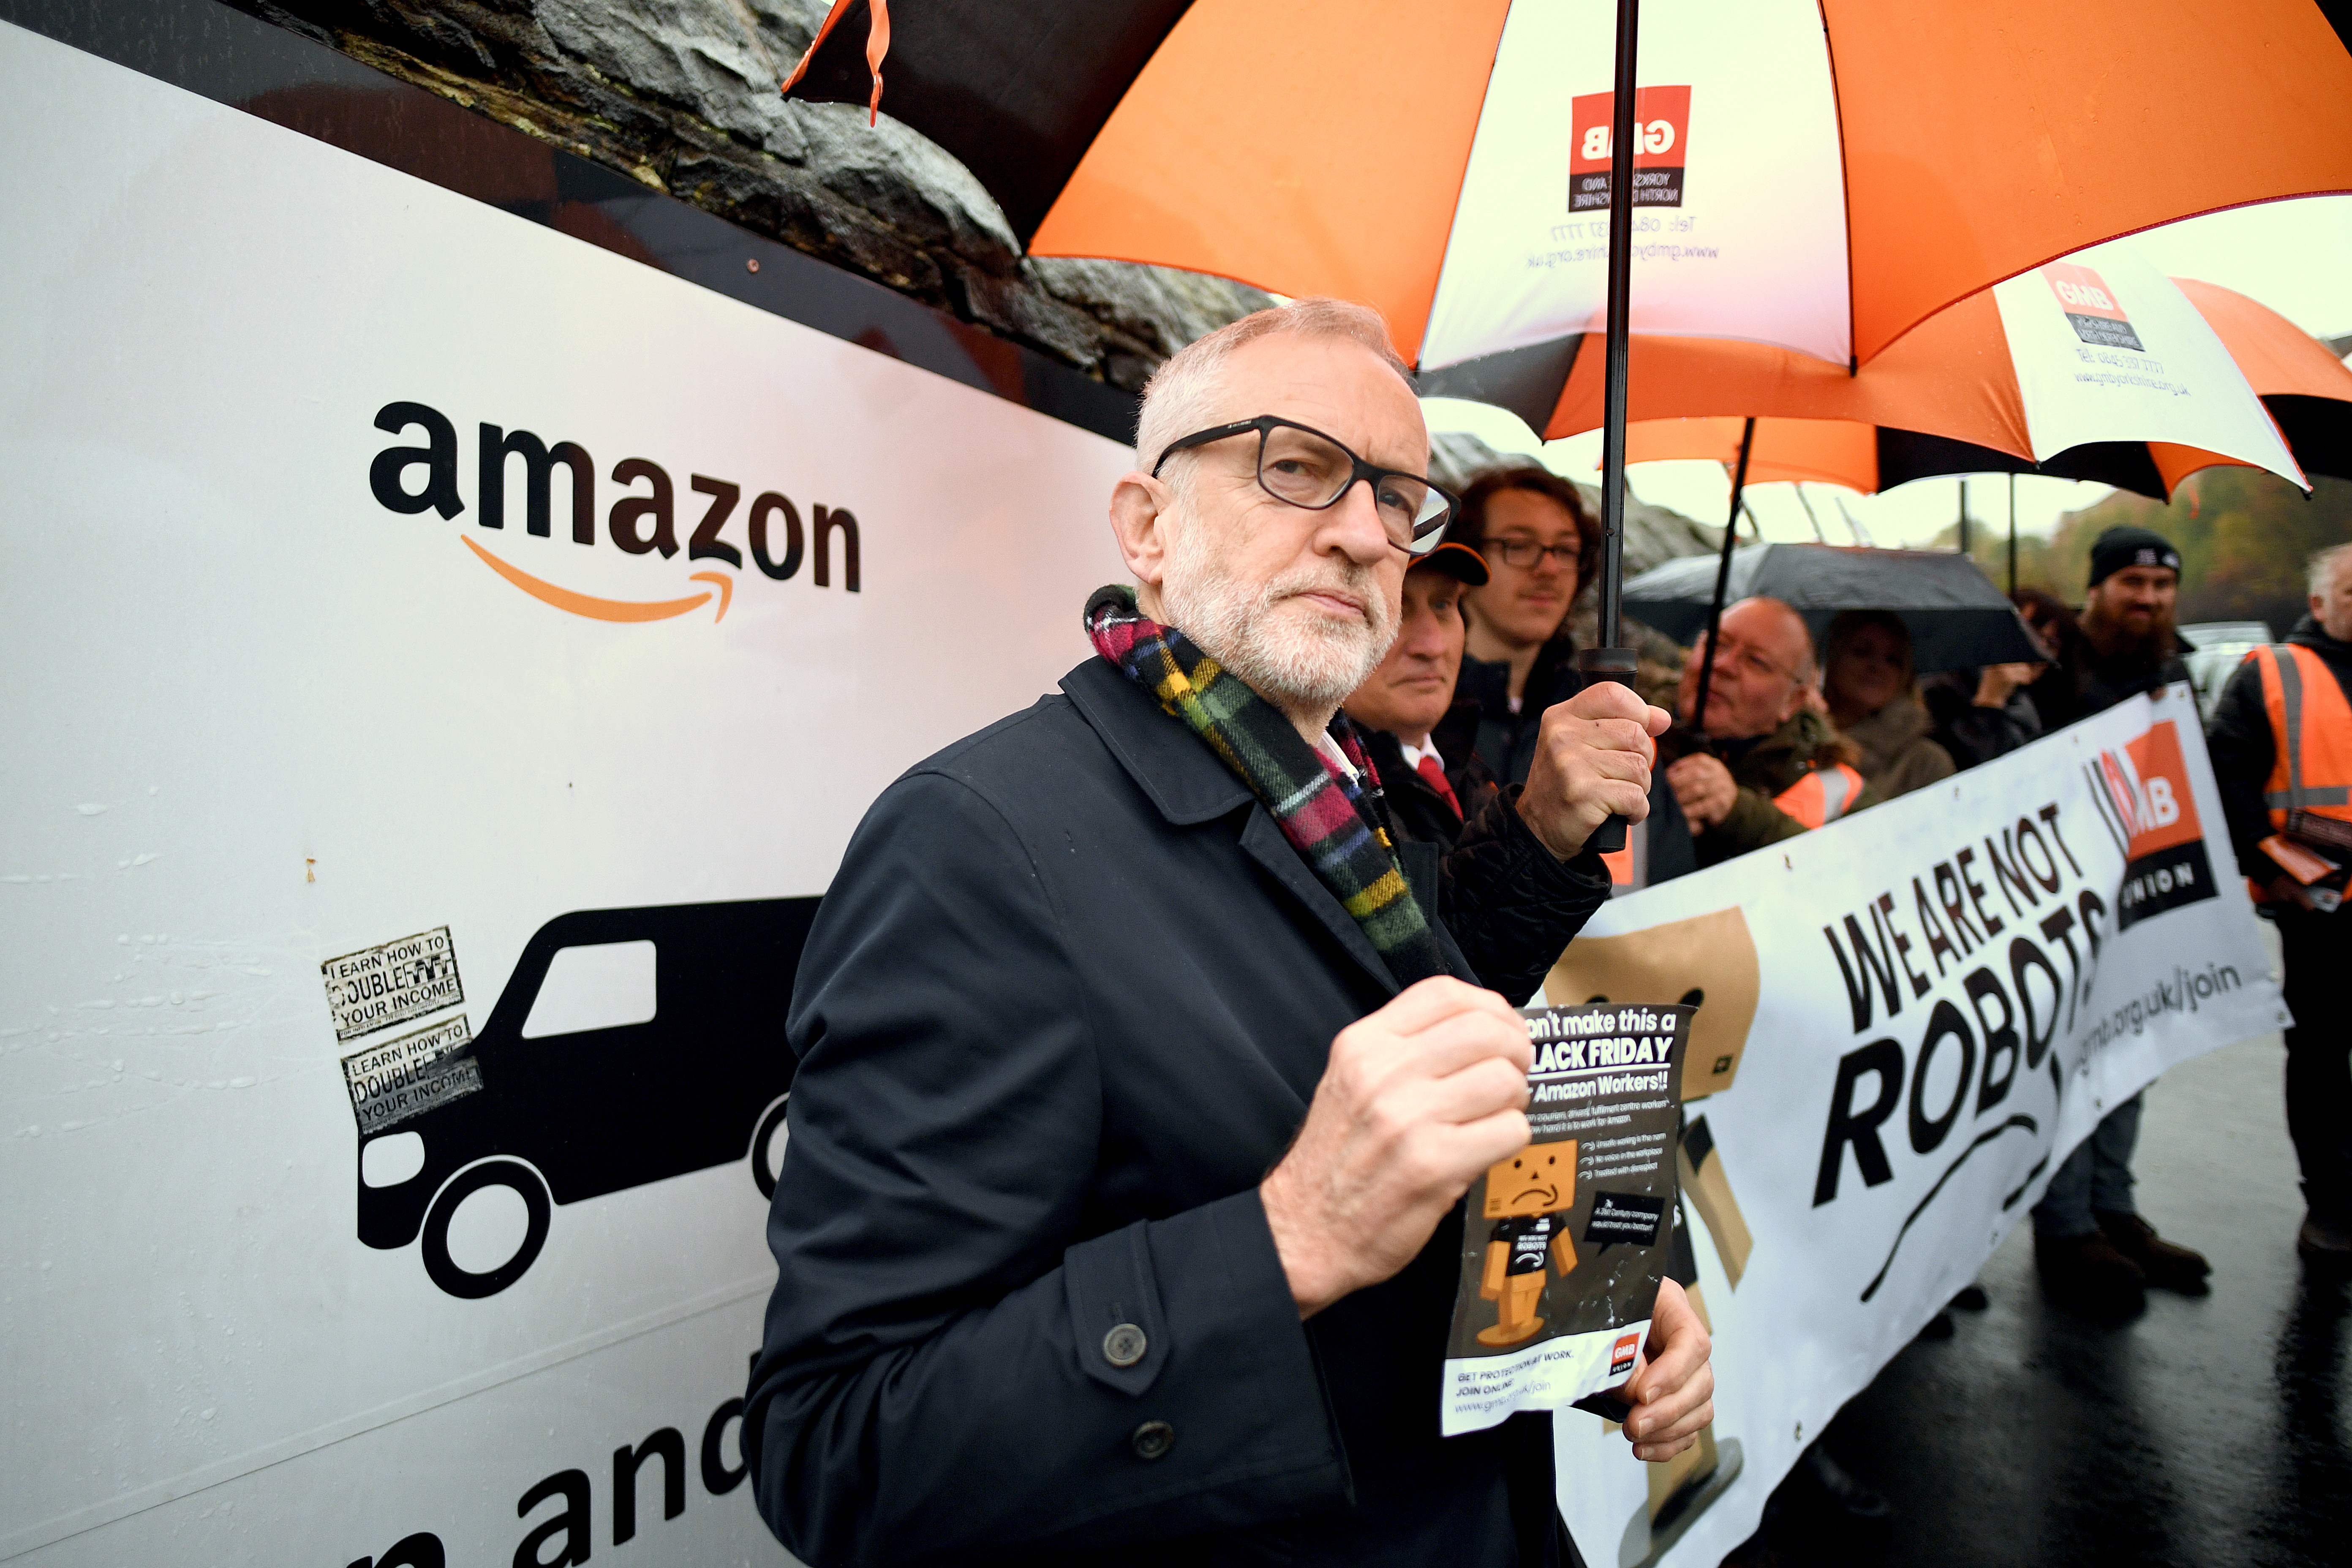 Labour Party leader Jeremy Corbyn outside an Amazon depot in Sheffield, South Yorkshire, to announce plans for a workers' rights revolution and to ensure big businesses pay their fair share of taxes.